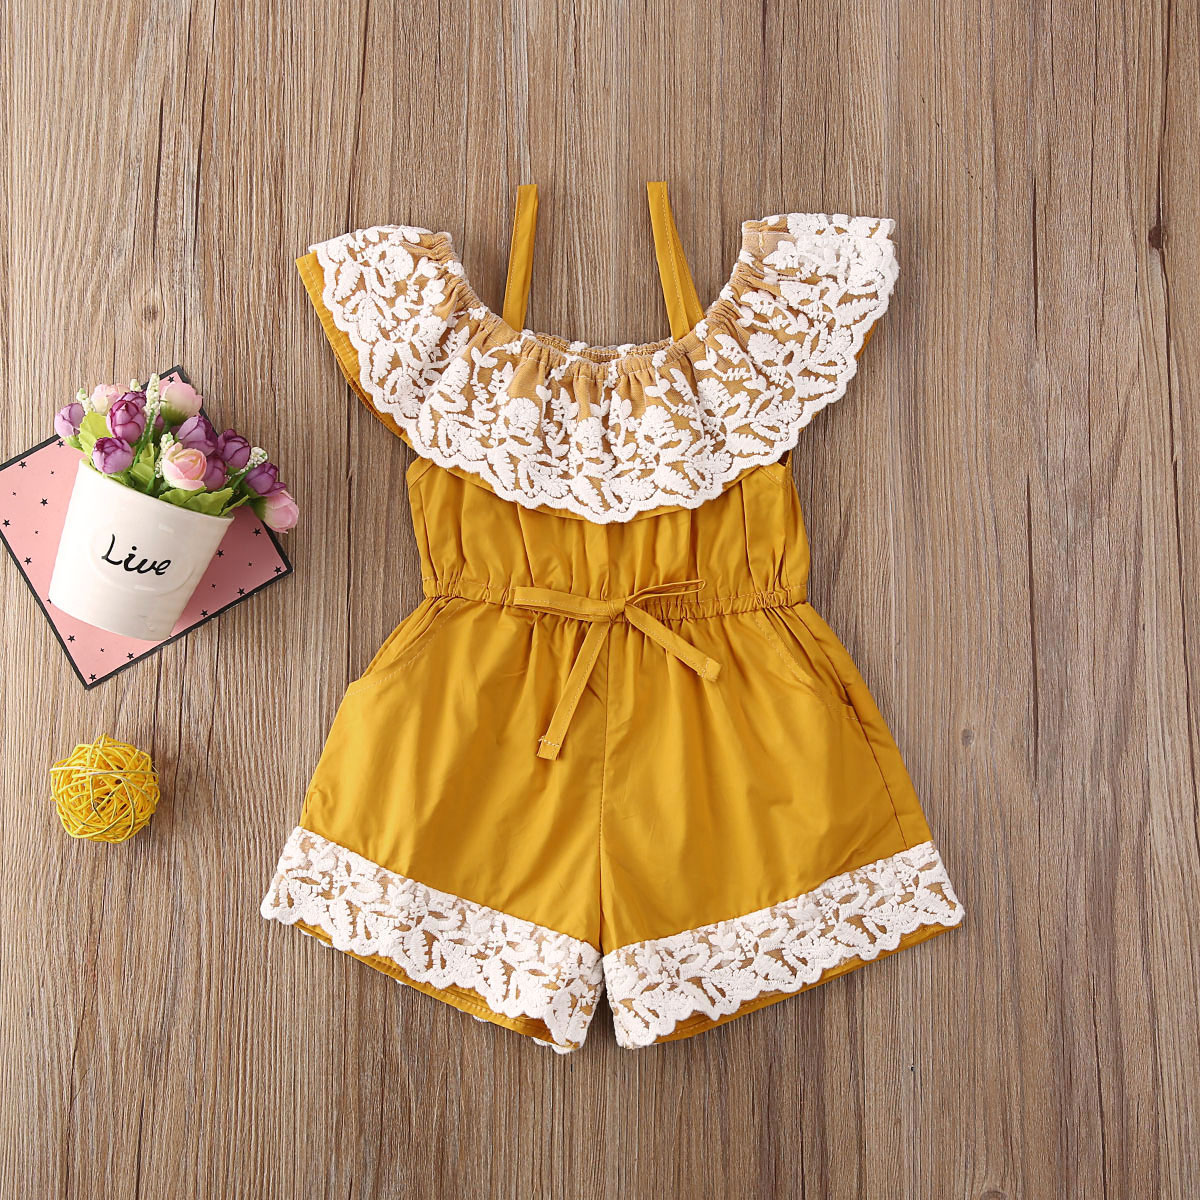 Pudcoco Newborn Baby Girl Clothes Solid Color Lace Flower Ruffle Off Shoulder Strap Romper Jumpsuit Outfit Playsuit Clothes